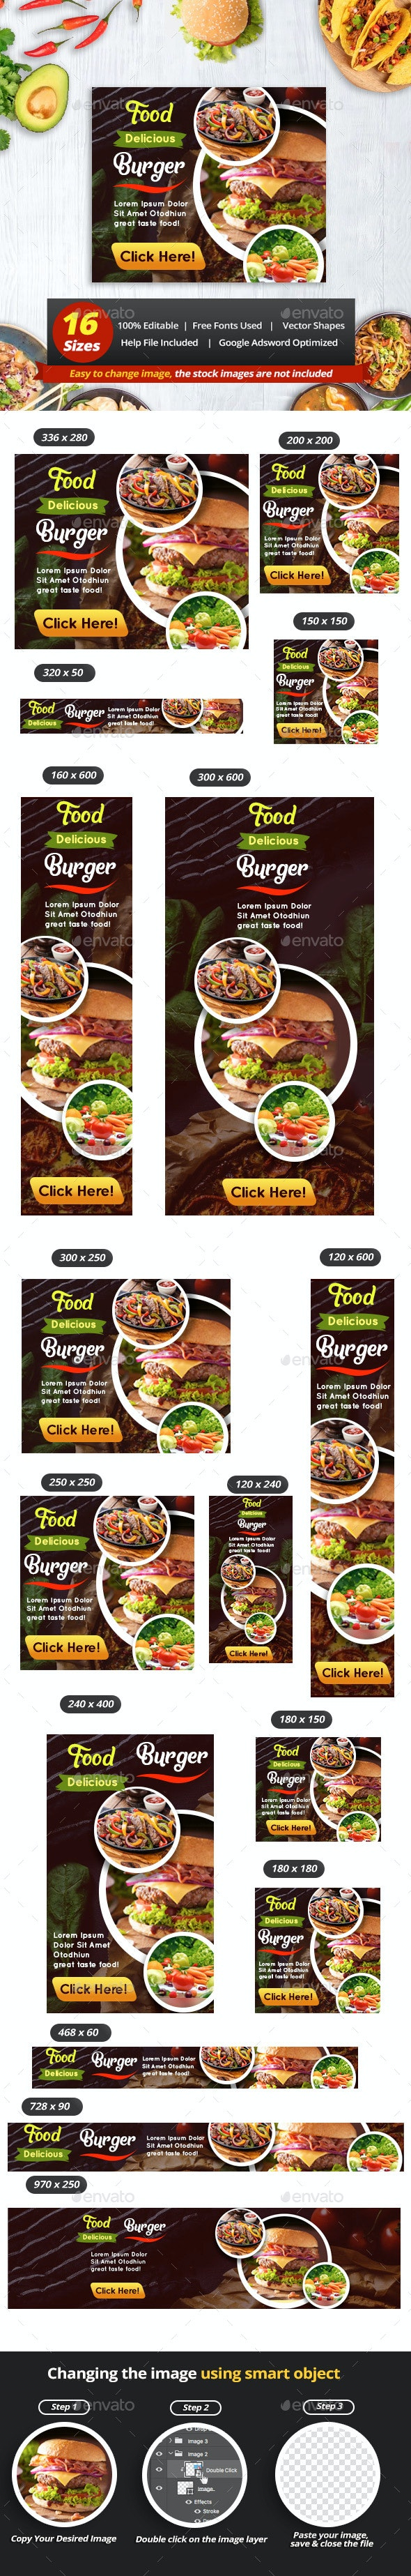 Business Food Restaurant Banner Ads - Banners & Ads Web Elements